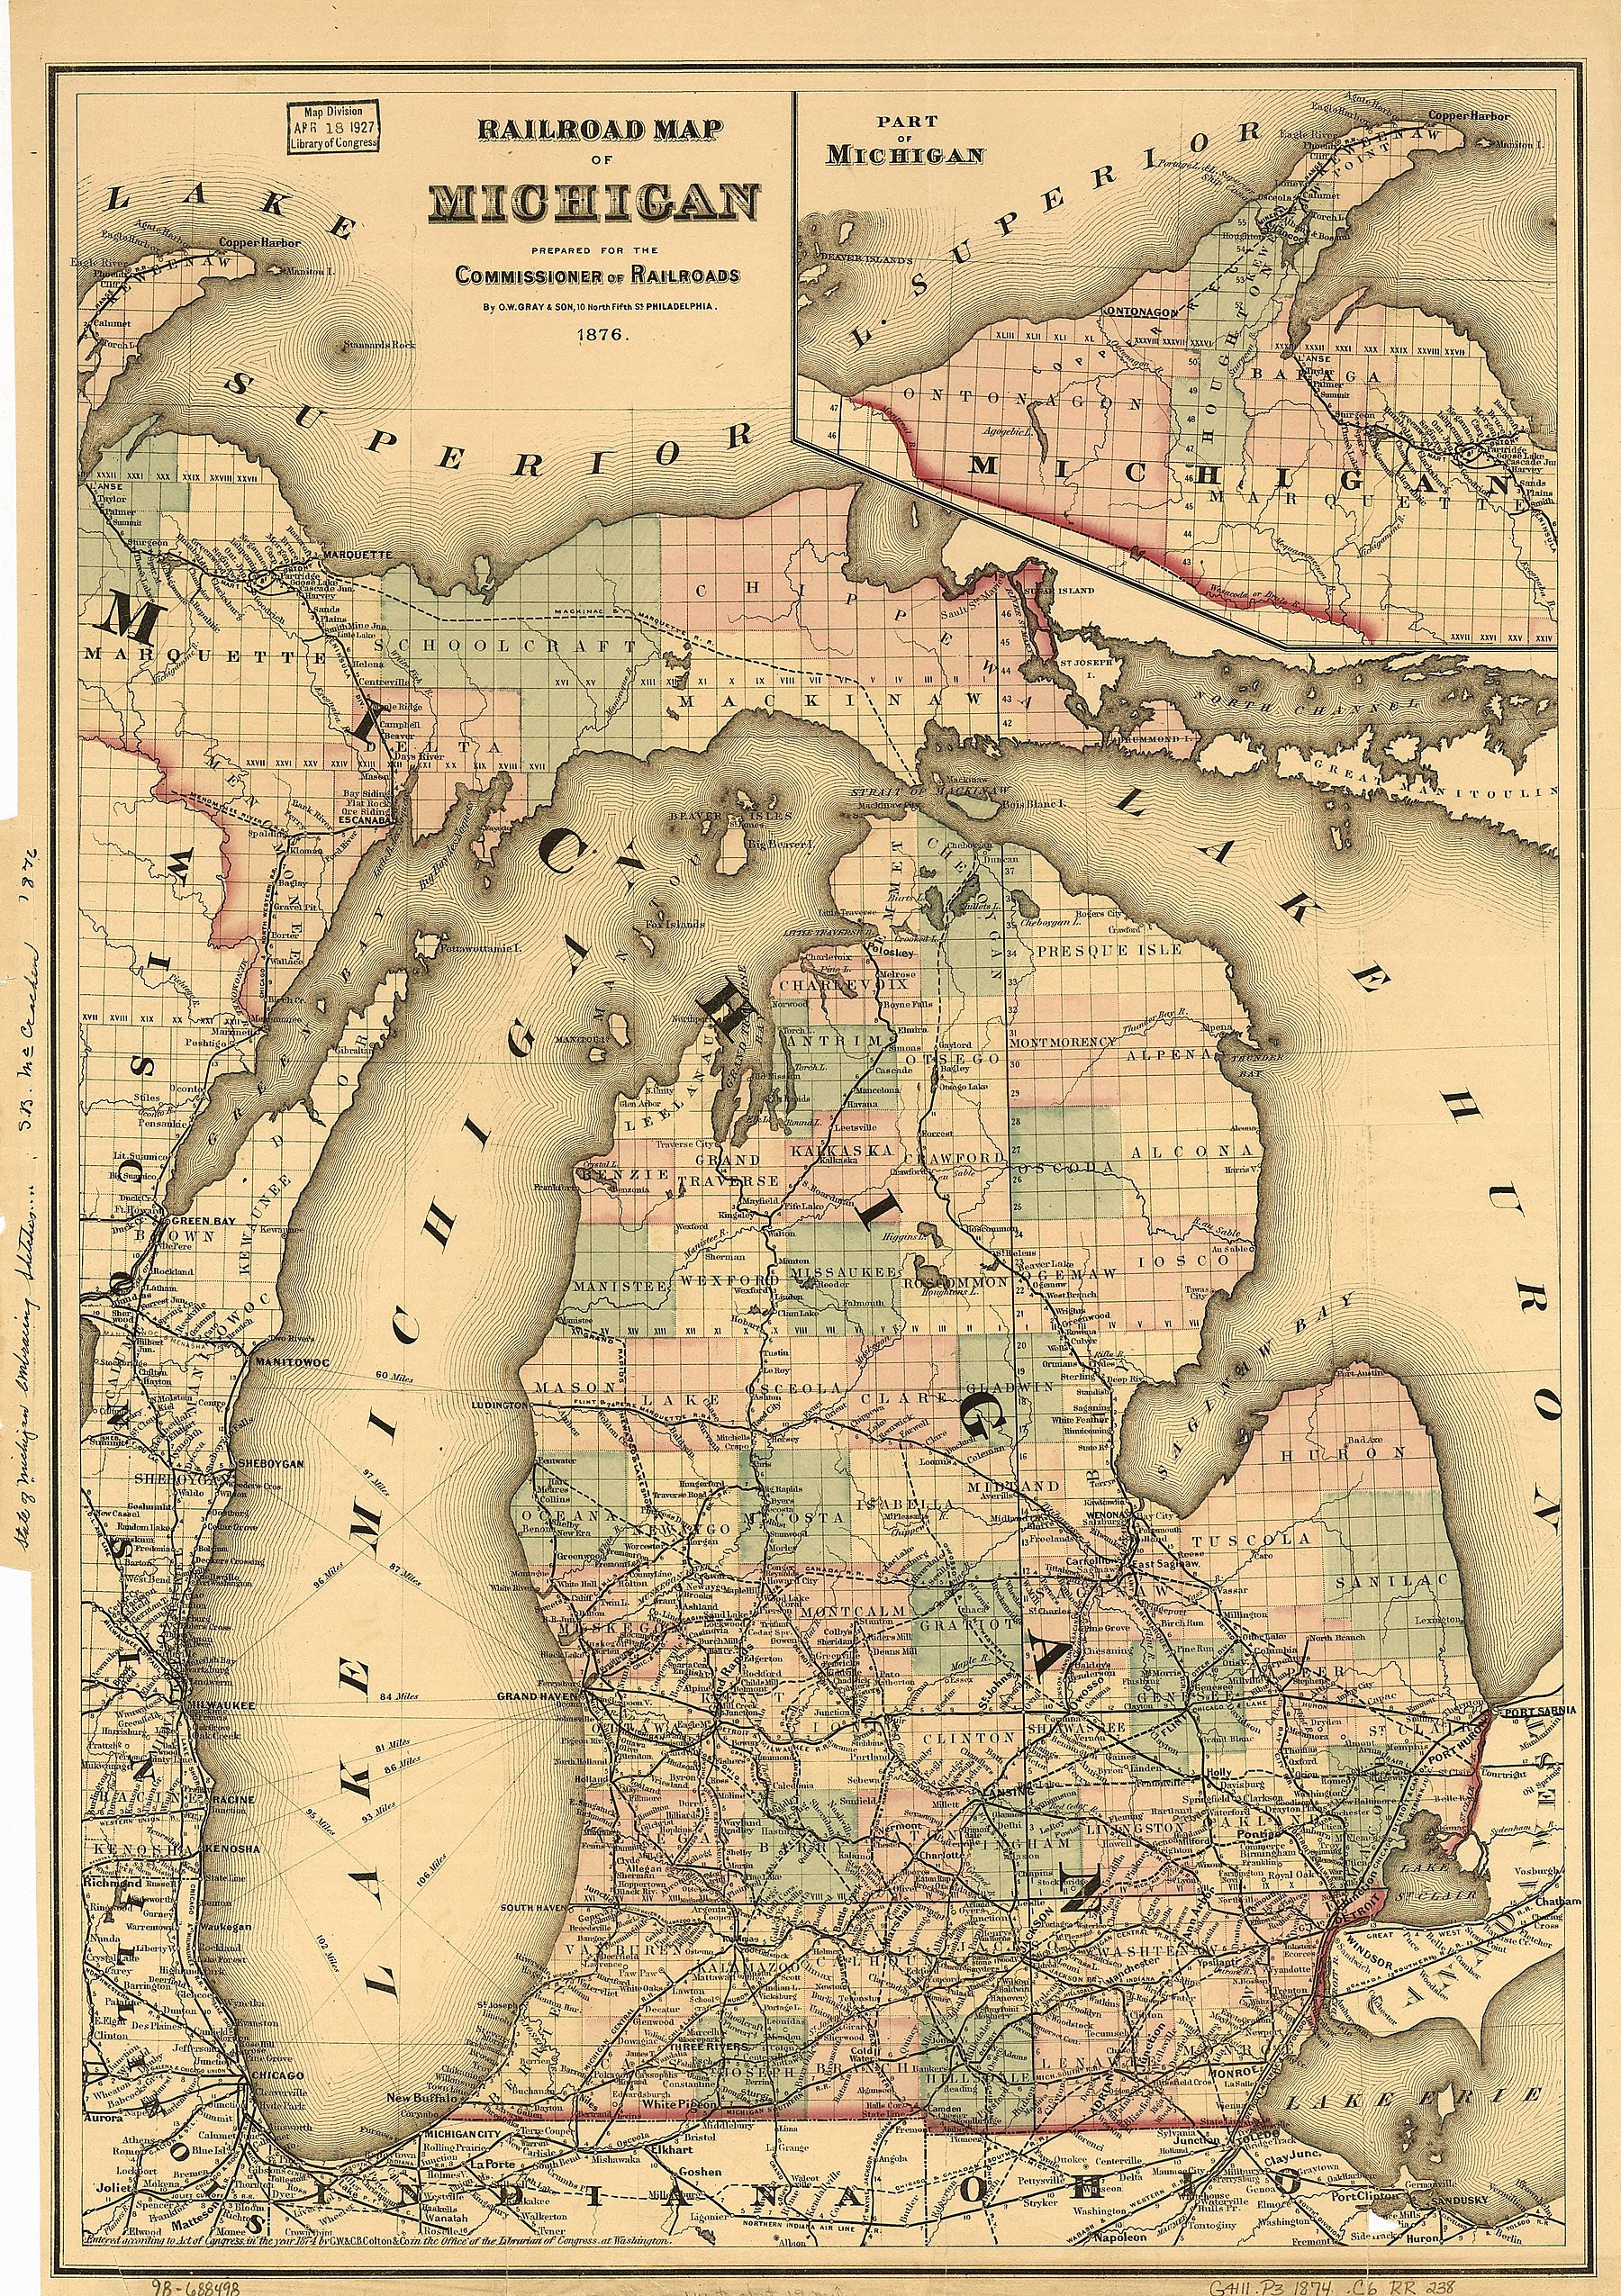 By 1876, the Grand Rapids and Indiana Railroad had built a line north to Petoskey. Petoskey became the county seat of Emmet County in 1902.[8]